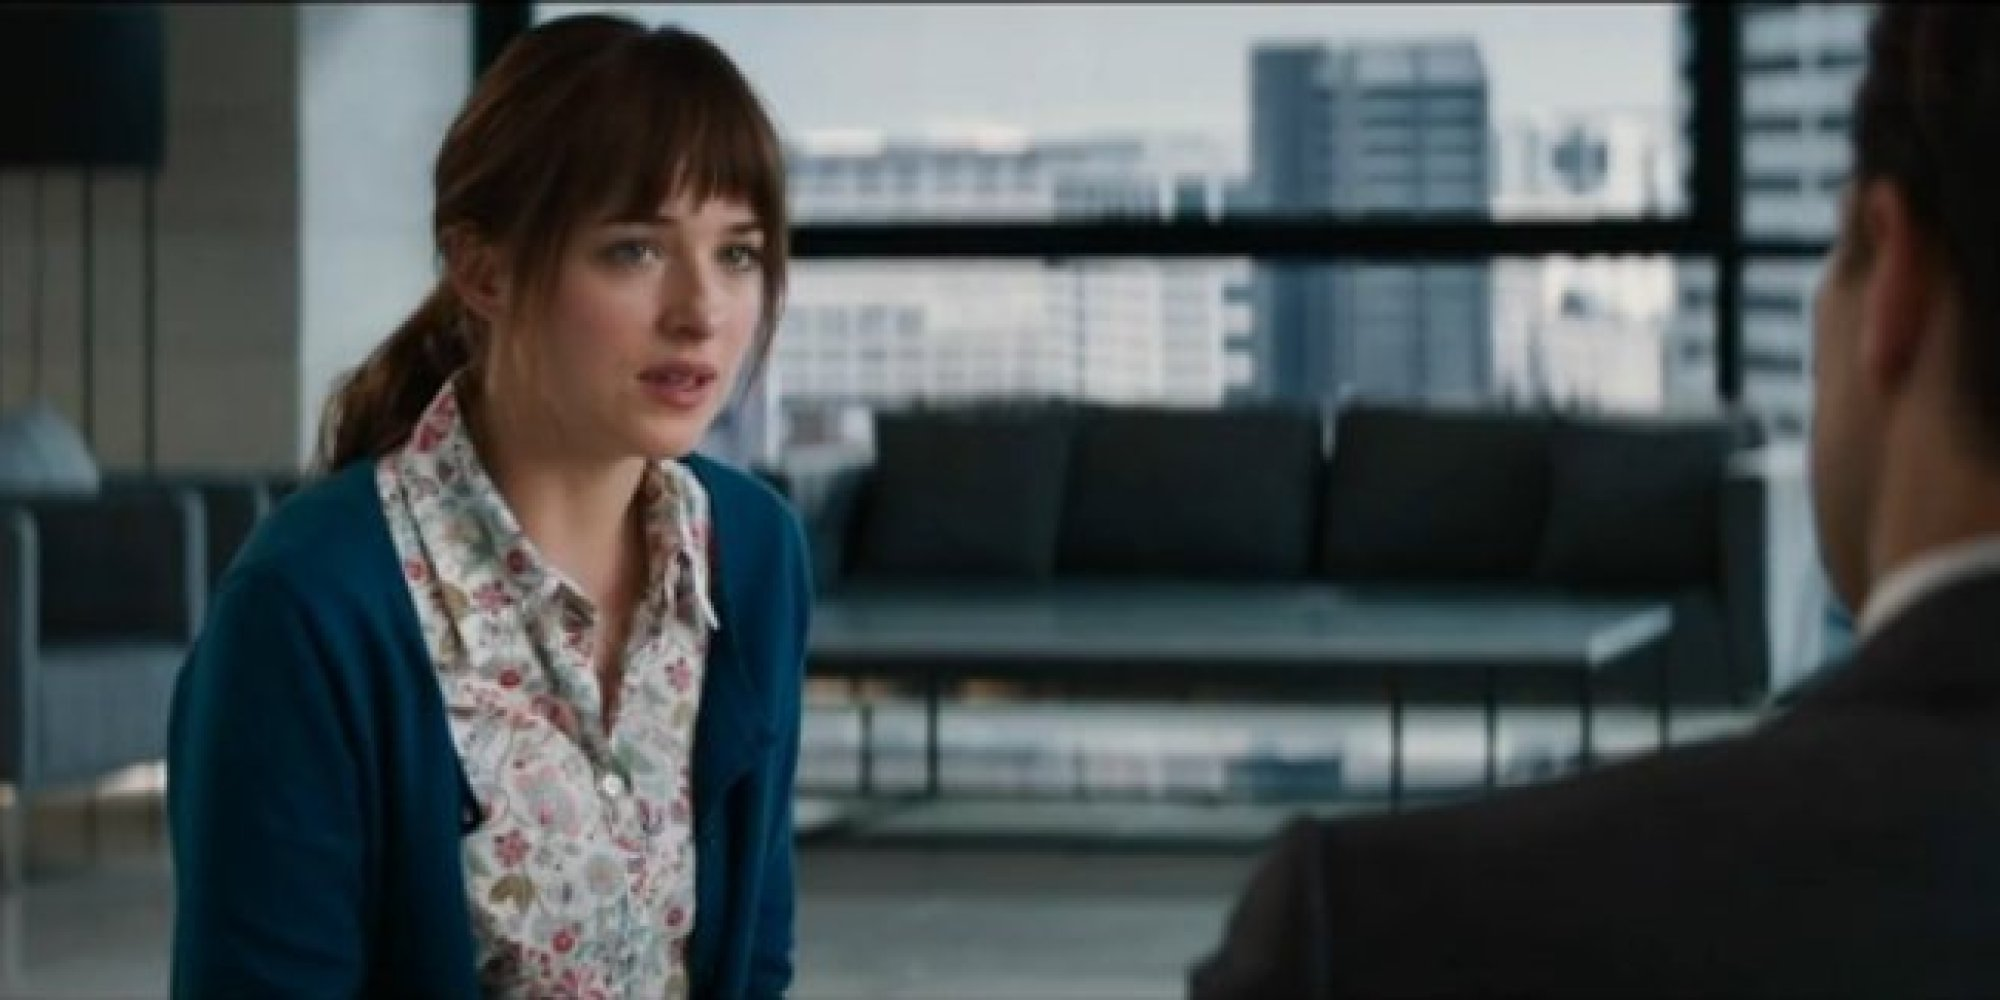 New 39 fifty shades of grey 39 trailer debuts during the for Fifty shades od gray